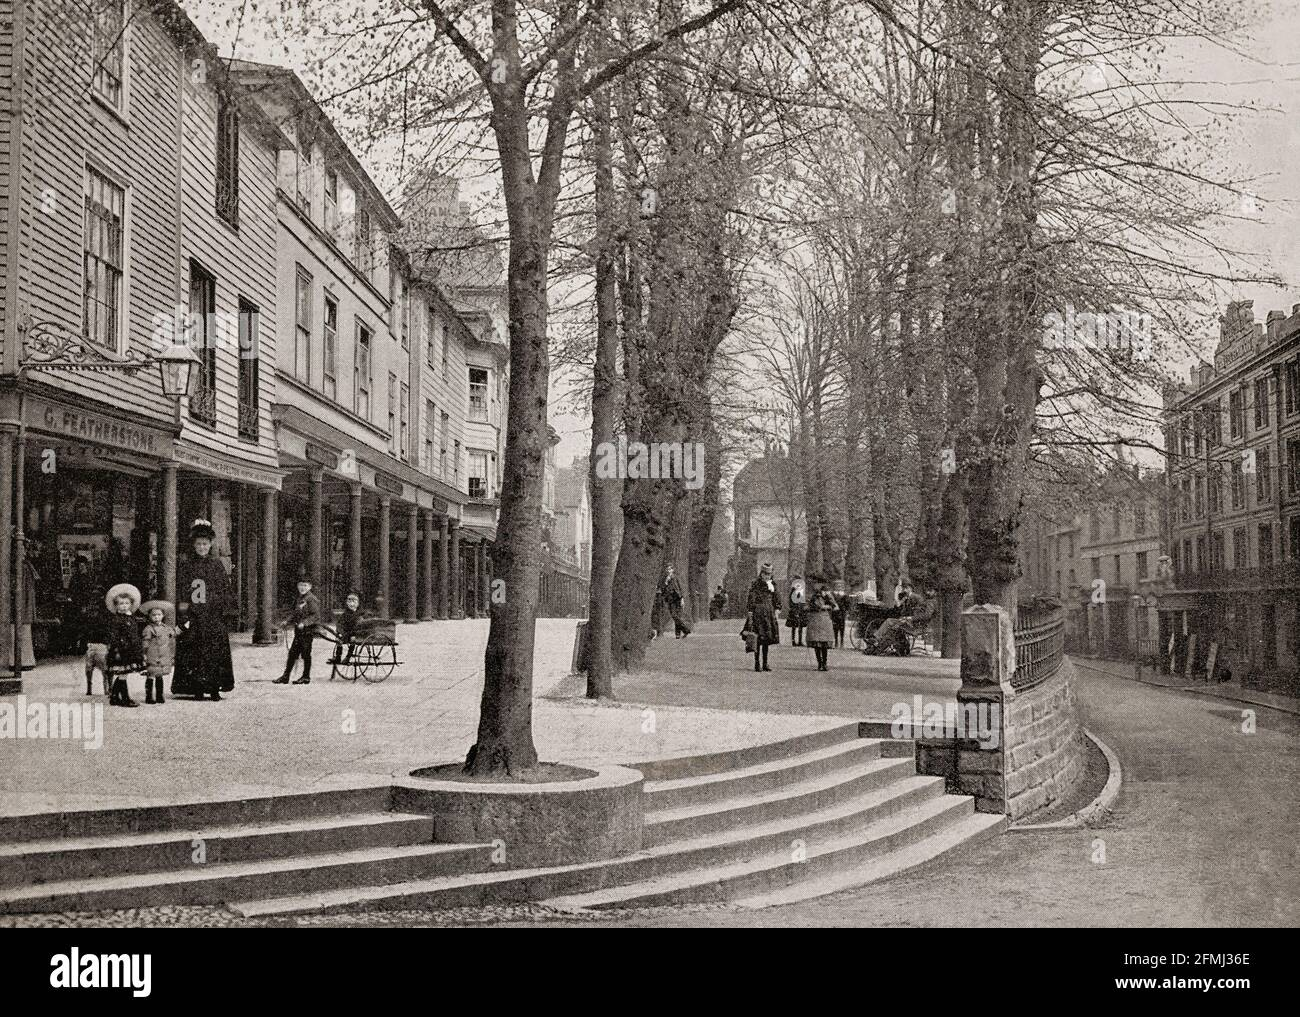 A late 19th Century view of The Pantiles, a Georgian colonnade in the town of Royal Tunbridge Wells, Kent, England constructed in the first part of the 18th century. Formerly known as The Walks and the (Royal) Parade, it leads from the well that gave the town its name. The pantiles used to pave the Upper Walks should not be confused with roofing pantiles. The paving installed there comprised one-inch thick square tiles made from heavy wealden clay, so named because they were shaped in a wooden pan before firing. Stock Photo